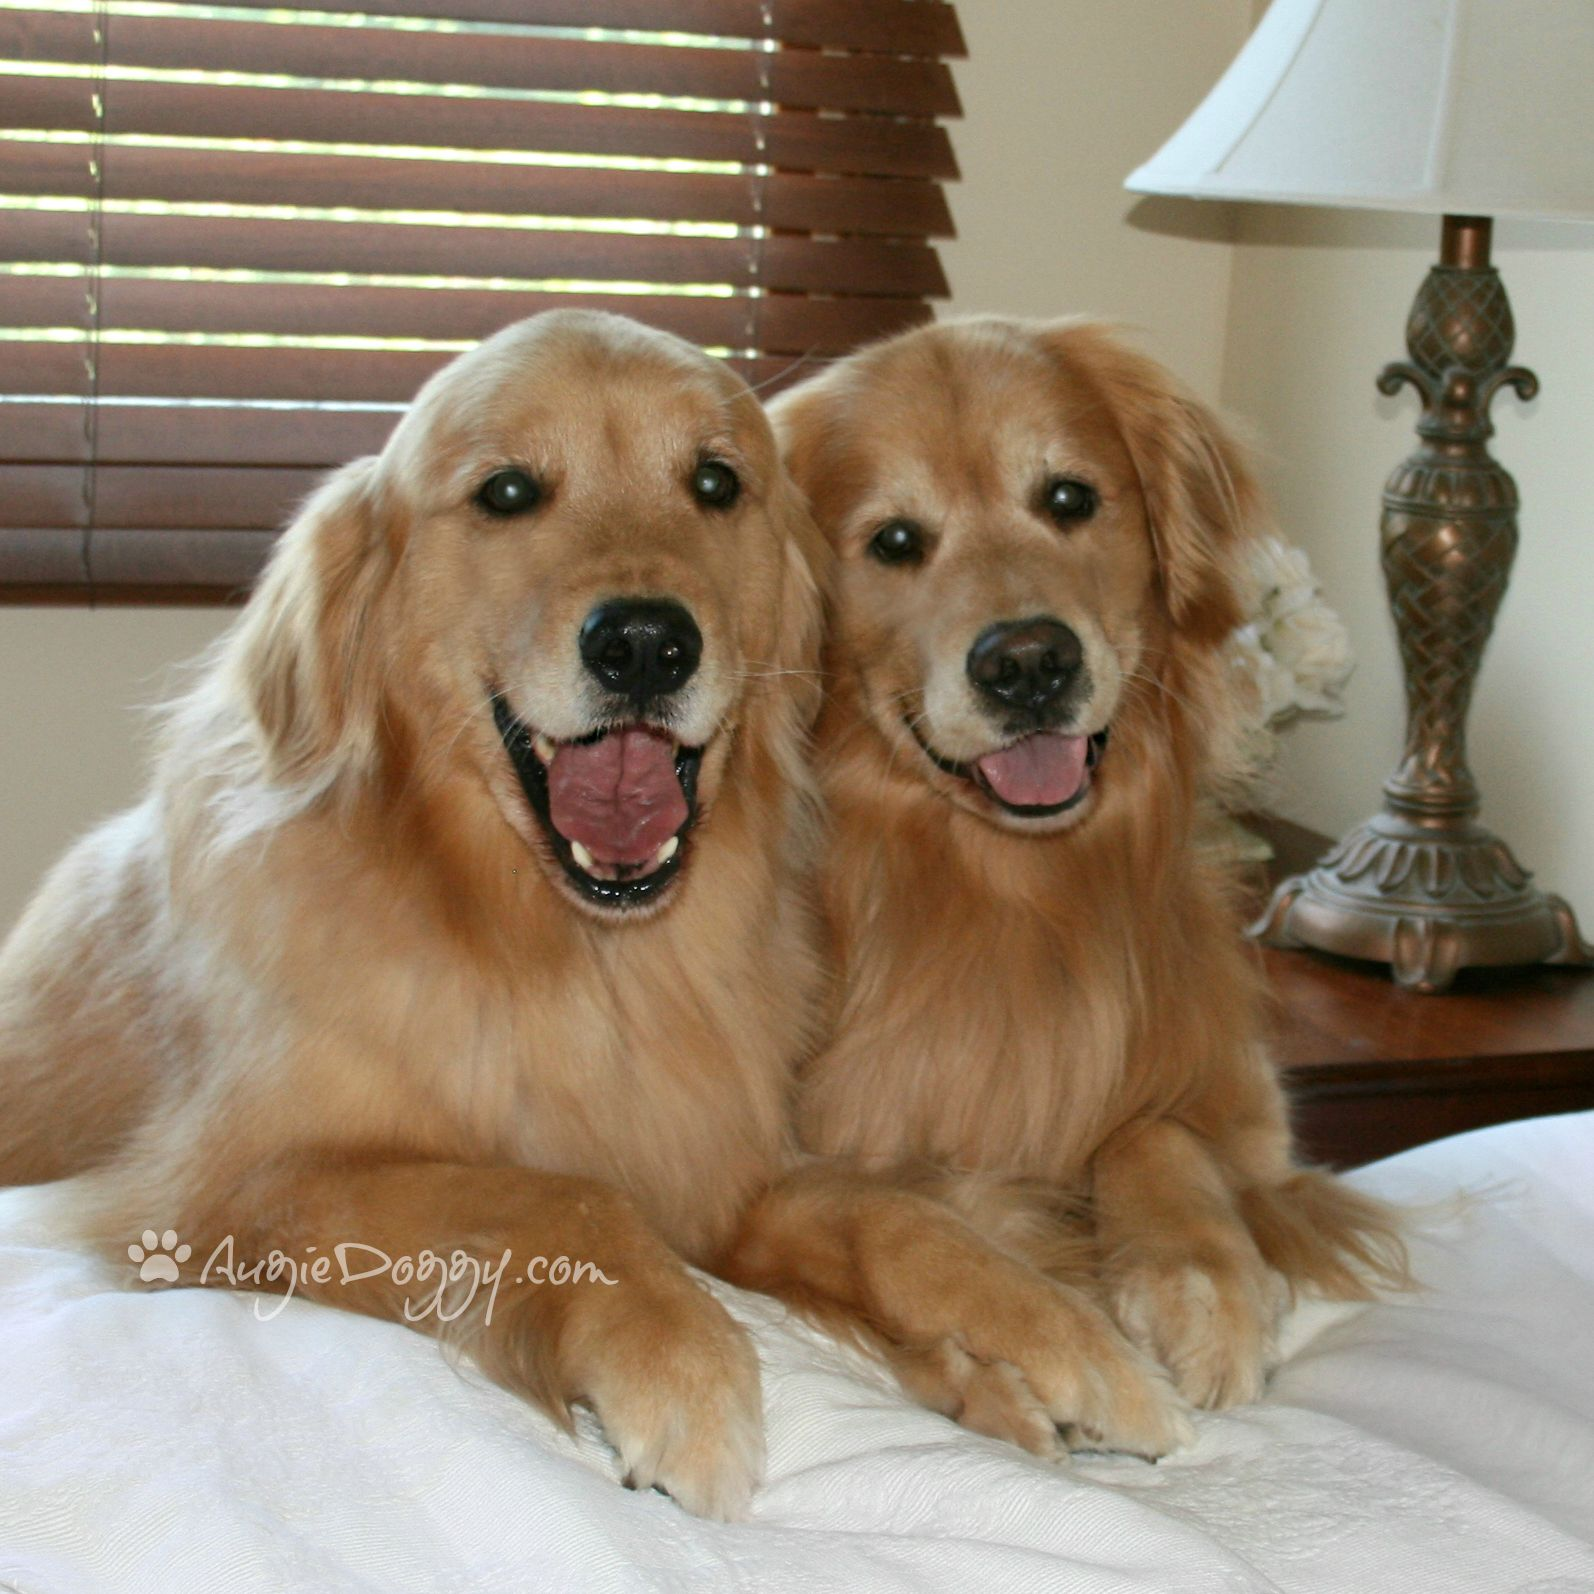 A Great Way To Wake Up With A Pair Of Goldens Ready To Start The